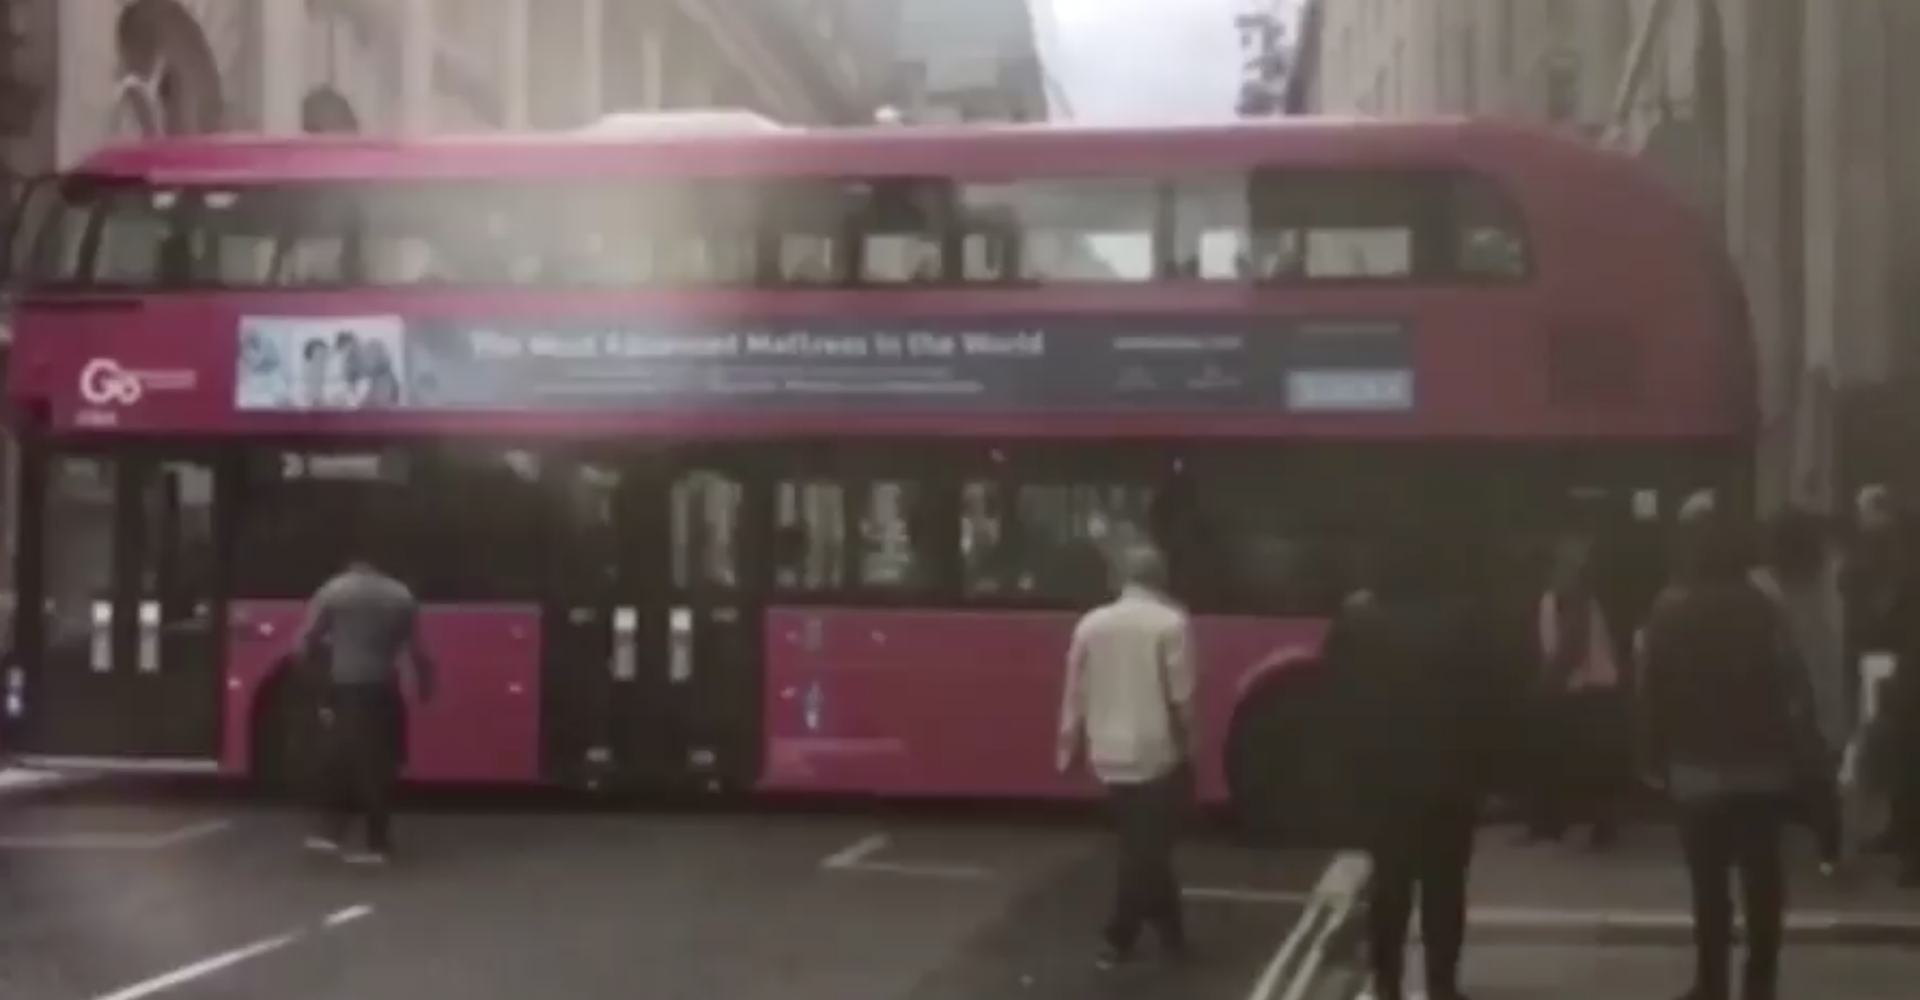 Bus Driver Gets Stuck While Attempting A Three-Point Turn